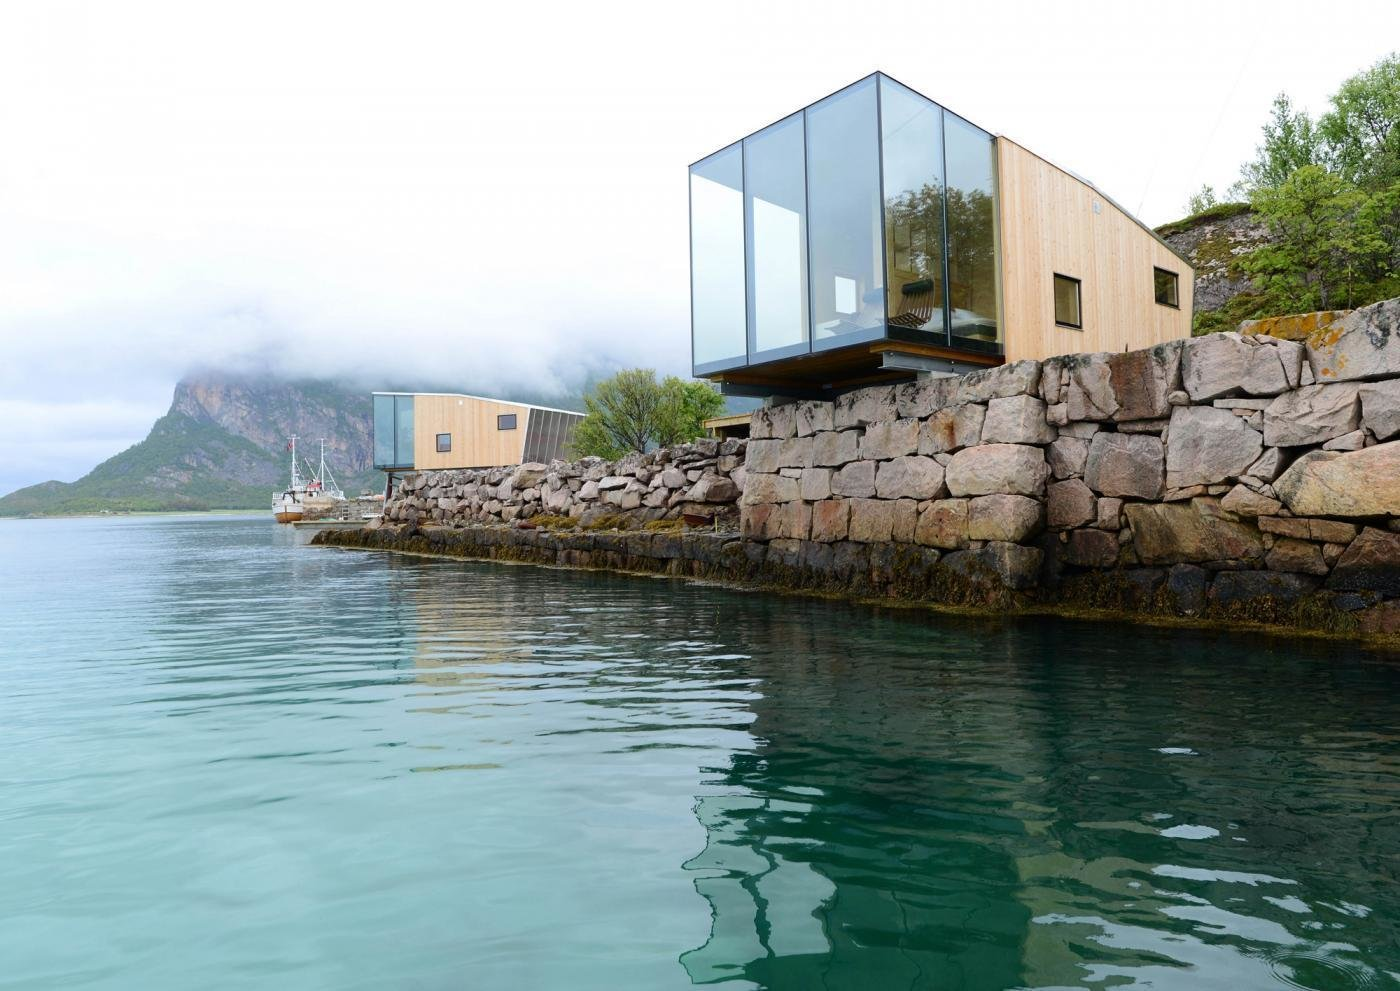 Photo 1 of 9 in Have You Ever Wanted to Stay in a Norwegian Sea Cabin?